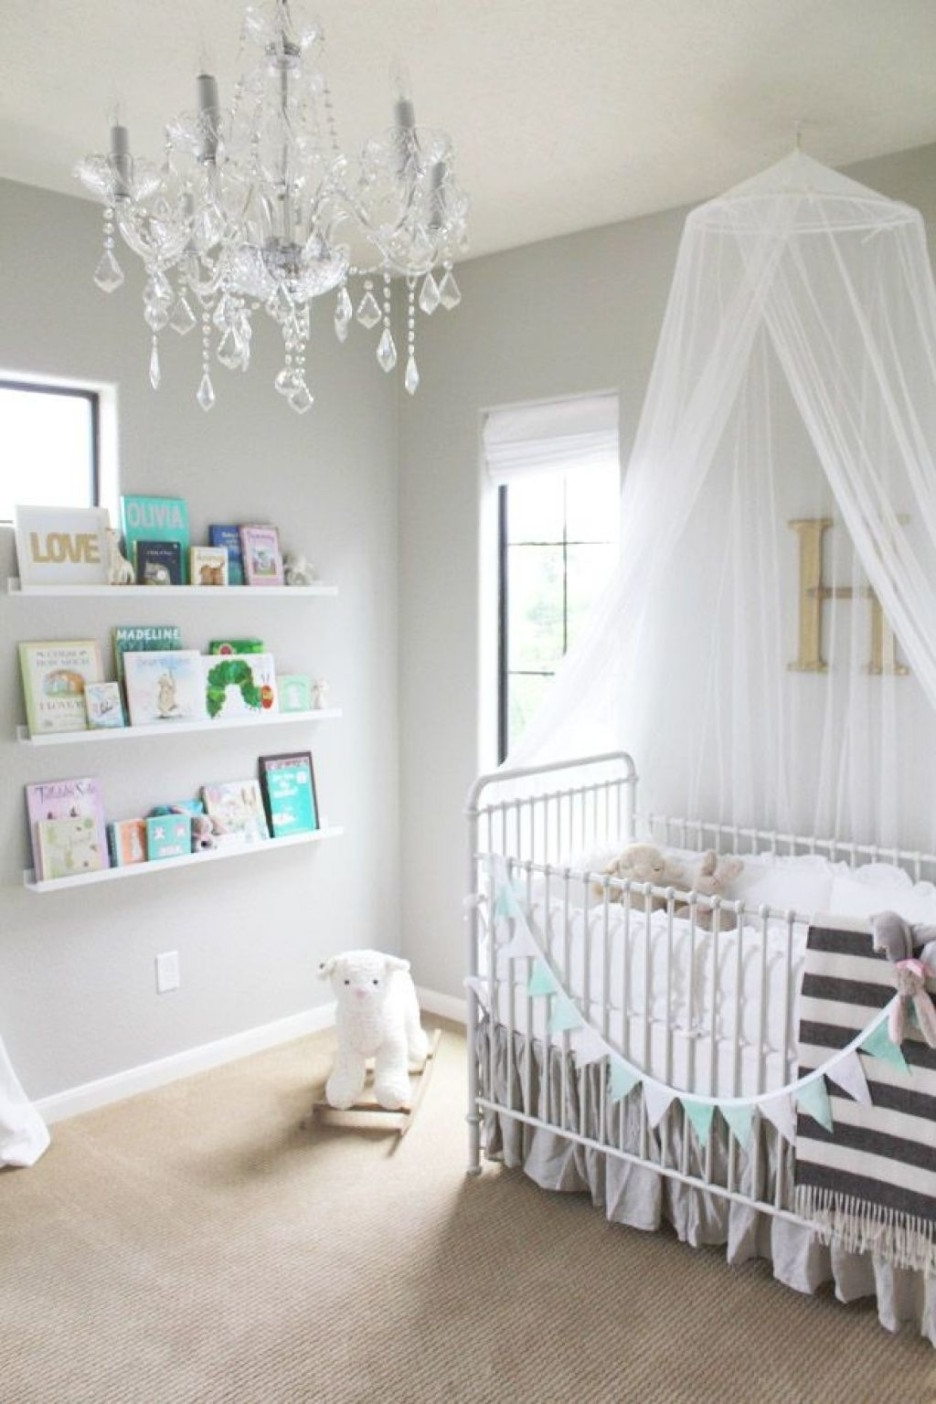 Kids Room : White Cozy Best Baby Nursery Chandelier To Select Throughout Most Current Kids Bedroom Chandeliers (View 4 of 15)